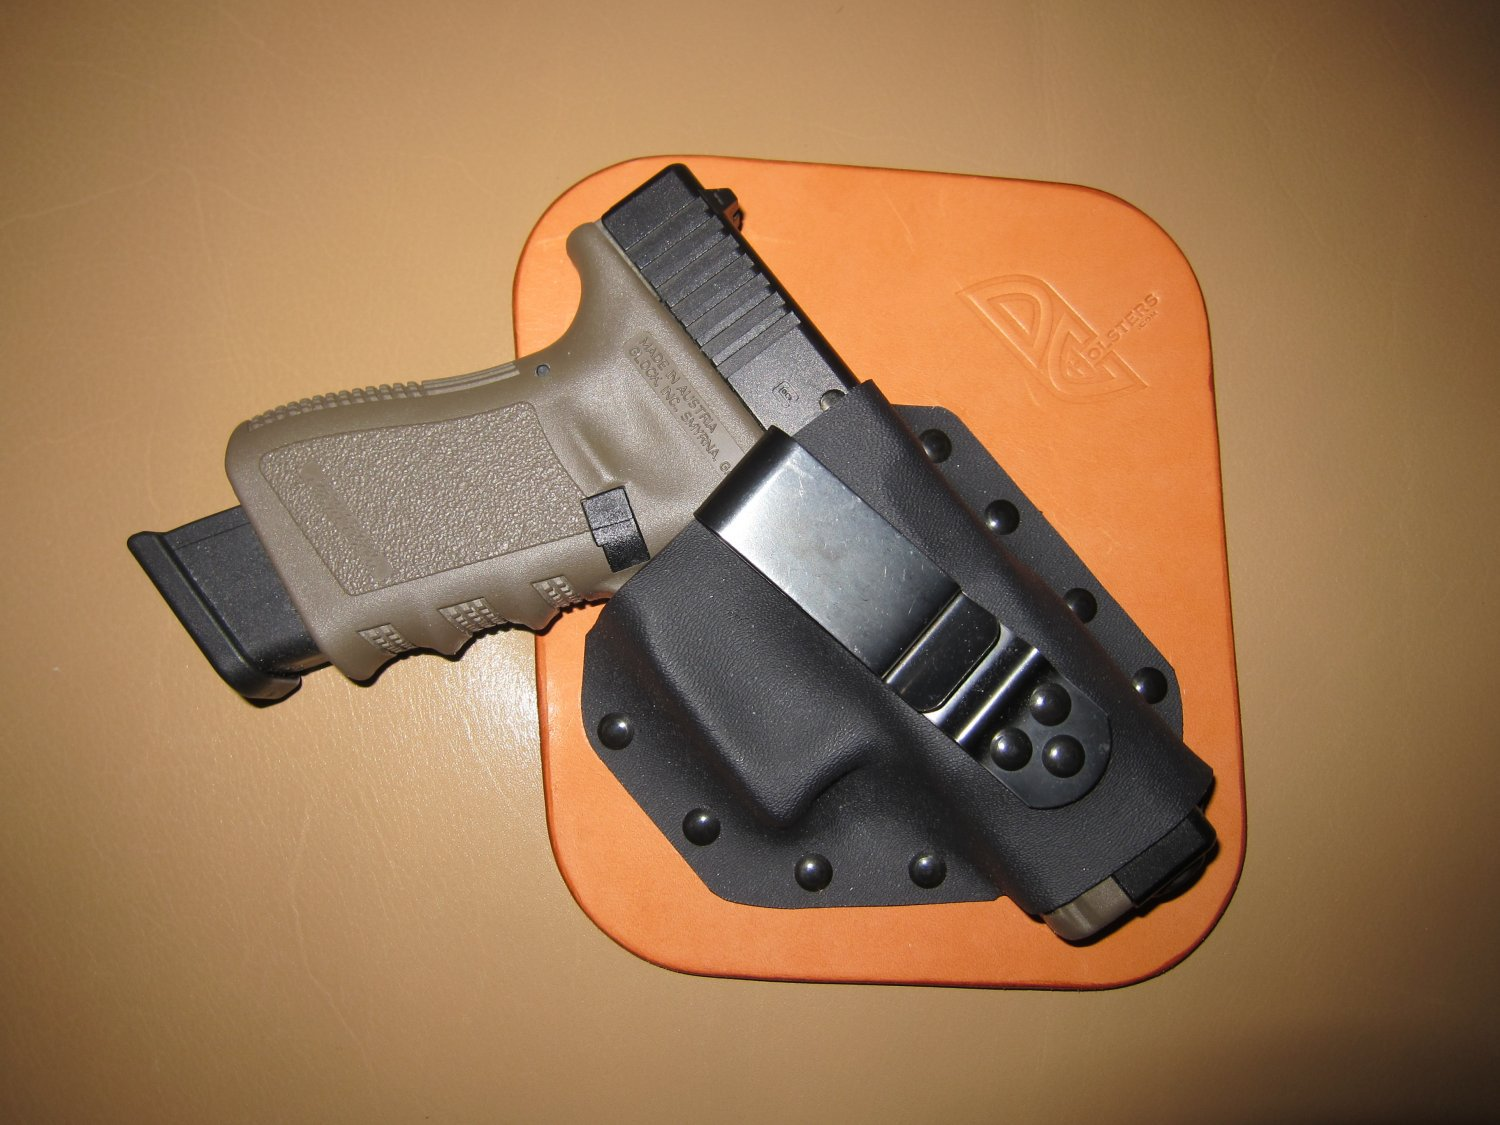 DC_Holsters_IWB_Concealment_Holster_1